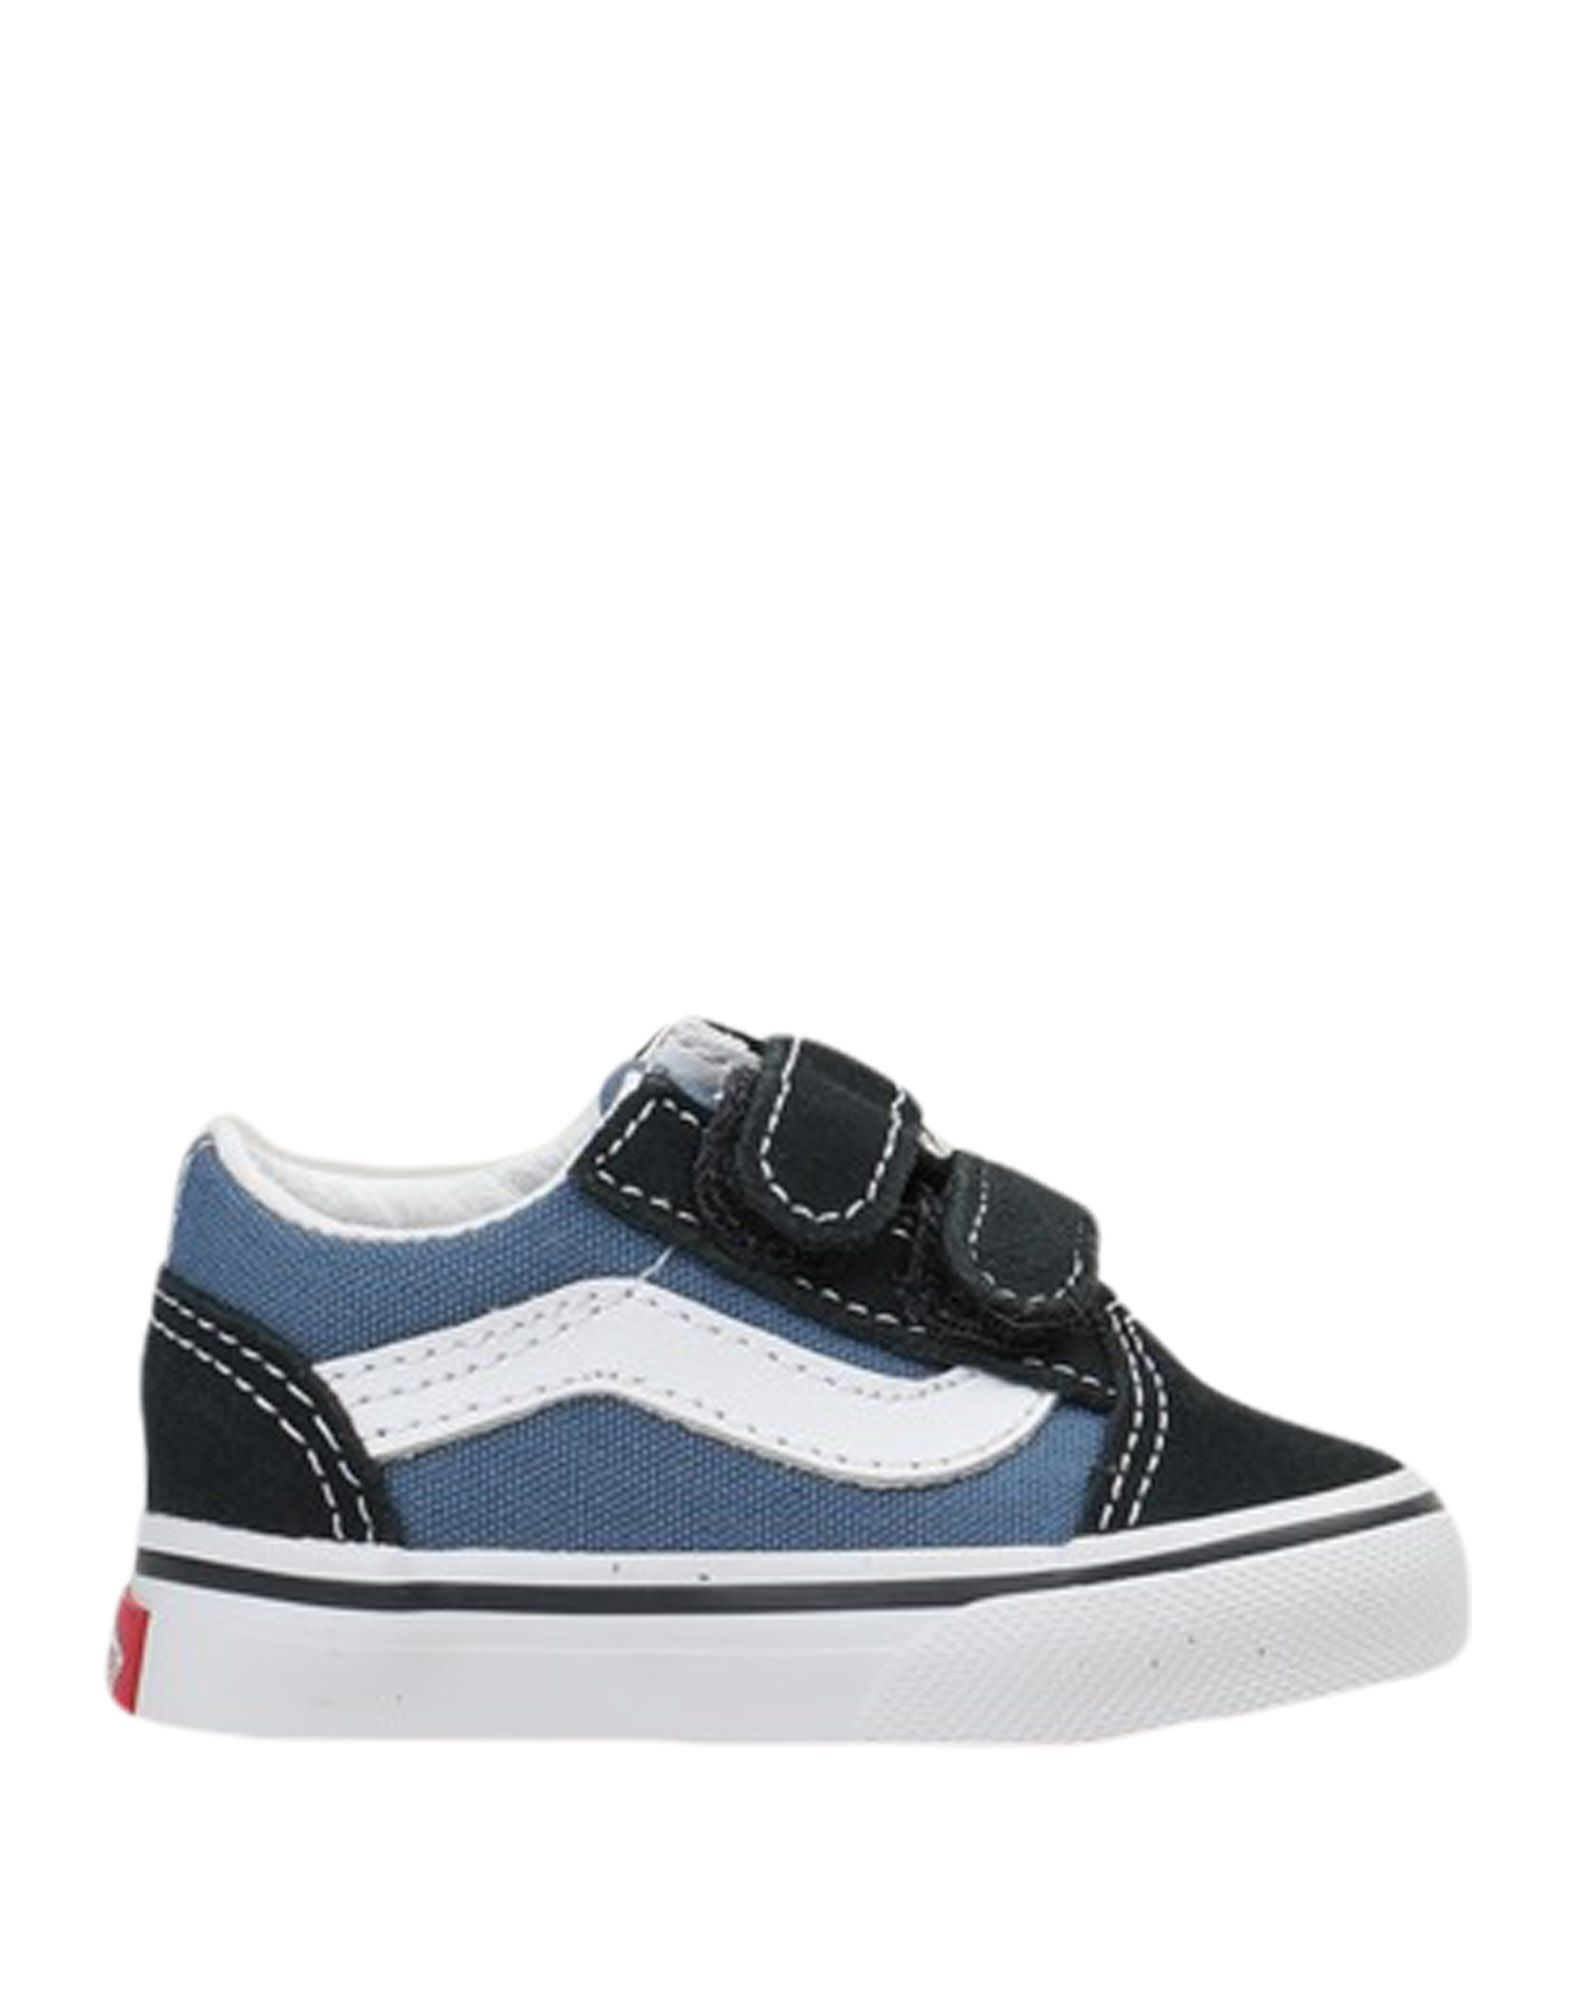 ad93c655cf8d01 Vans clothing for baby boy   toddler 0-24 months